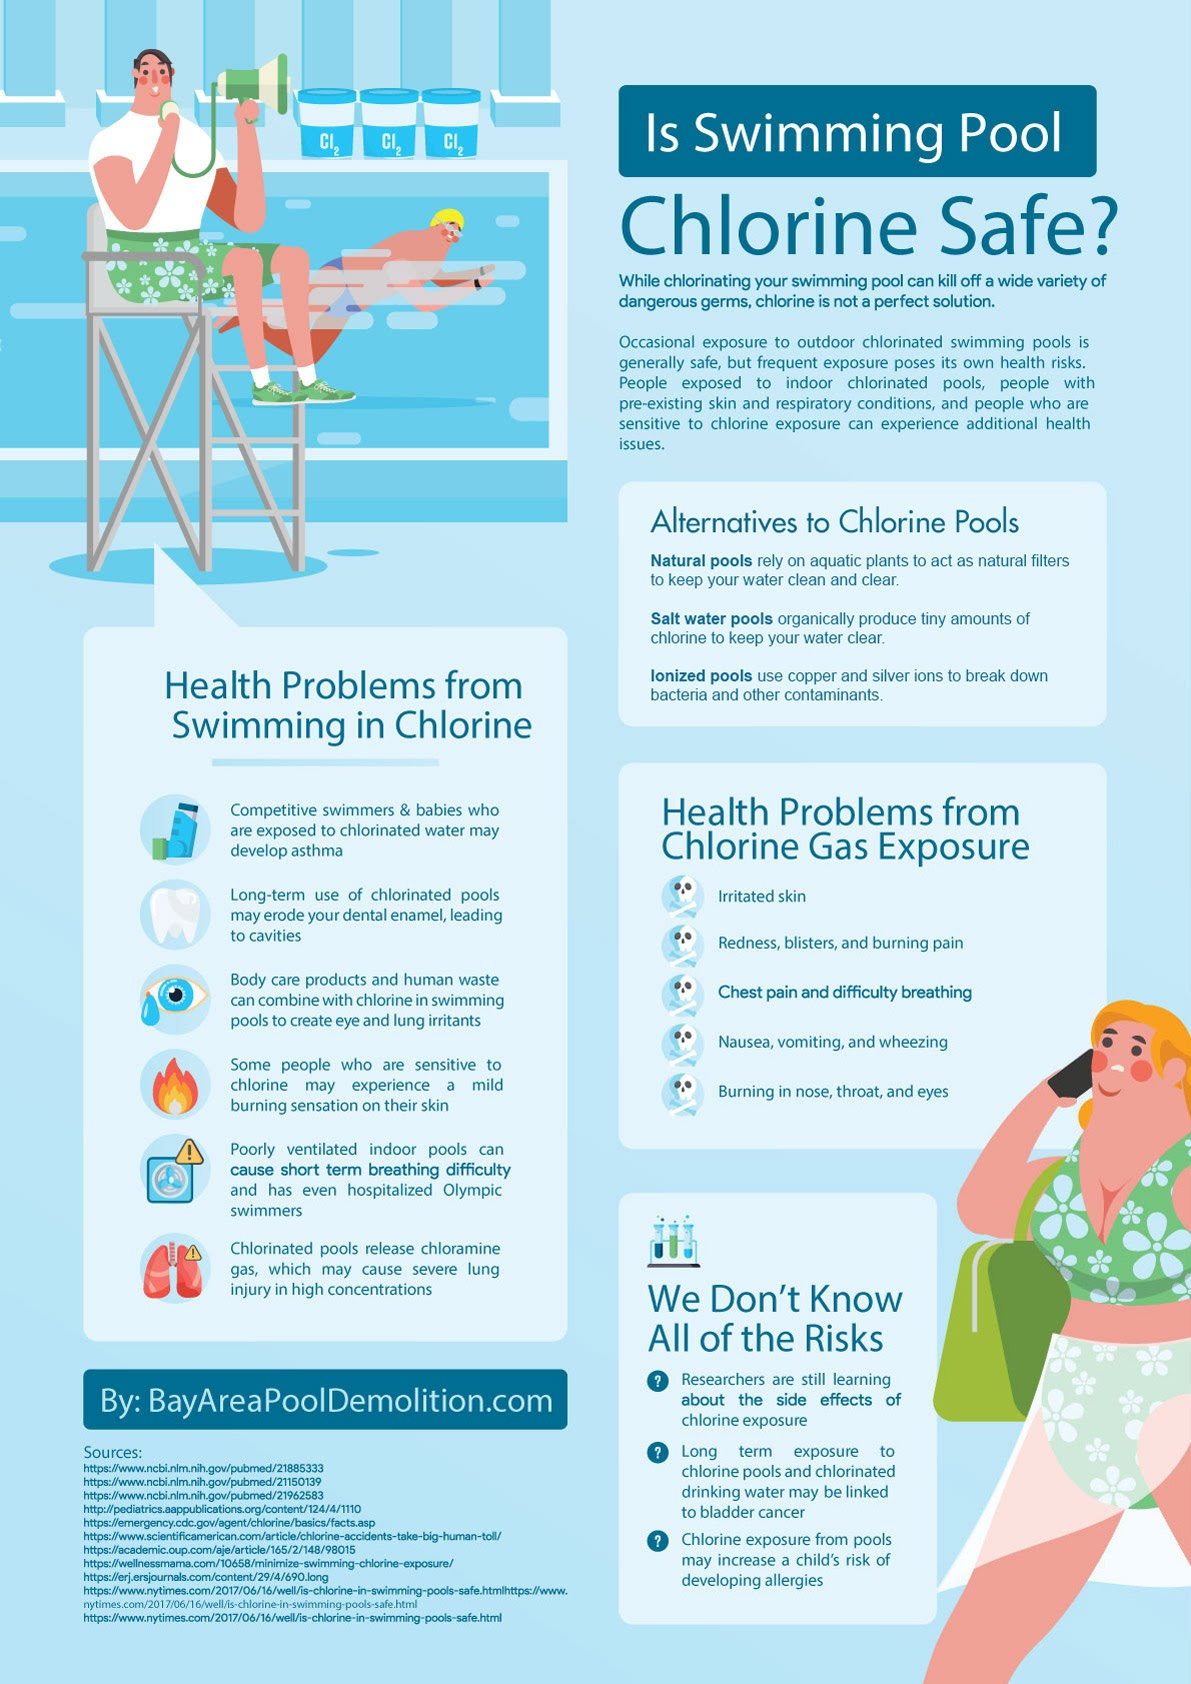 Is Swimming Pool Chlorine Safe? #Infographic